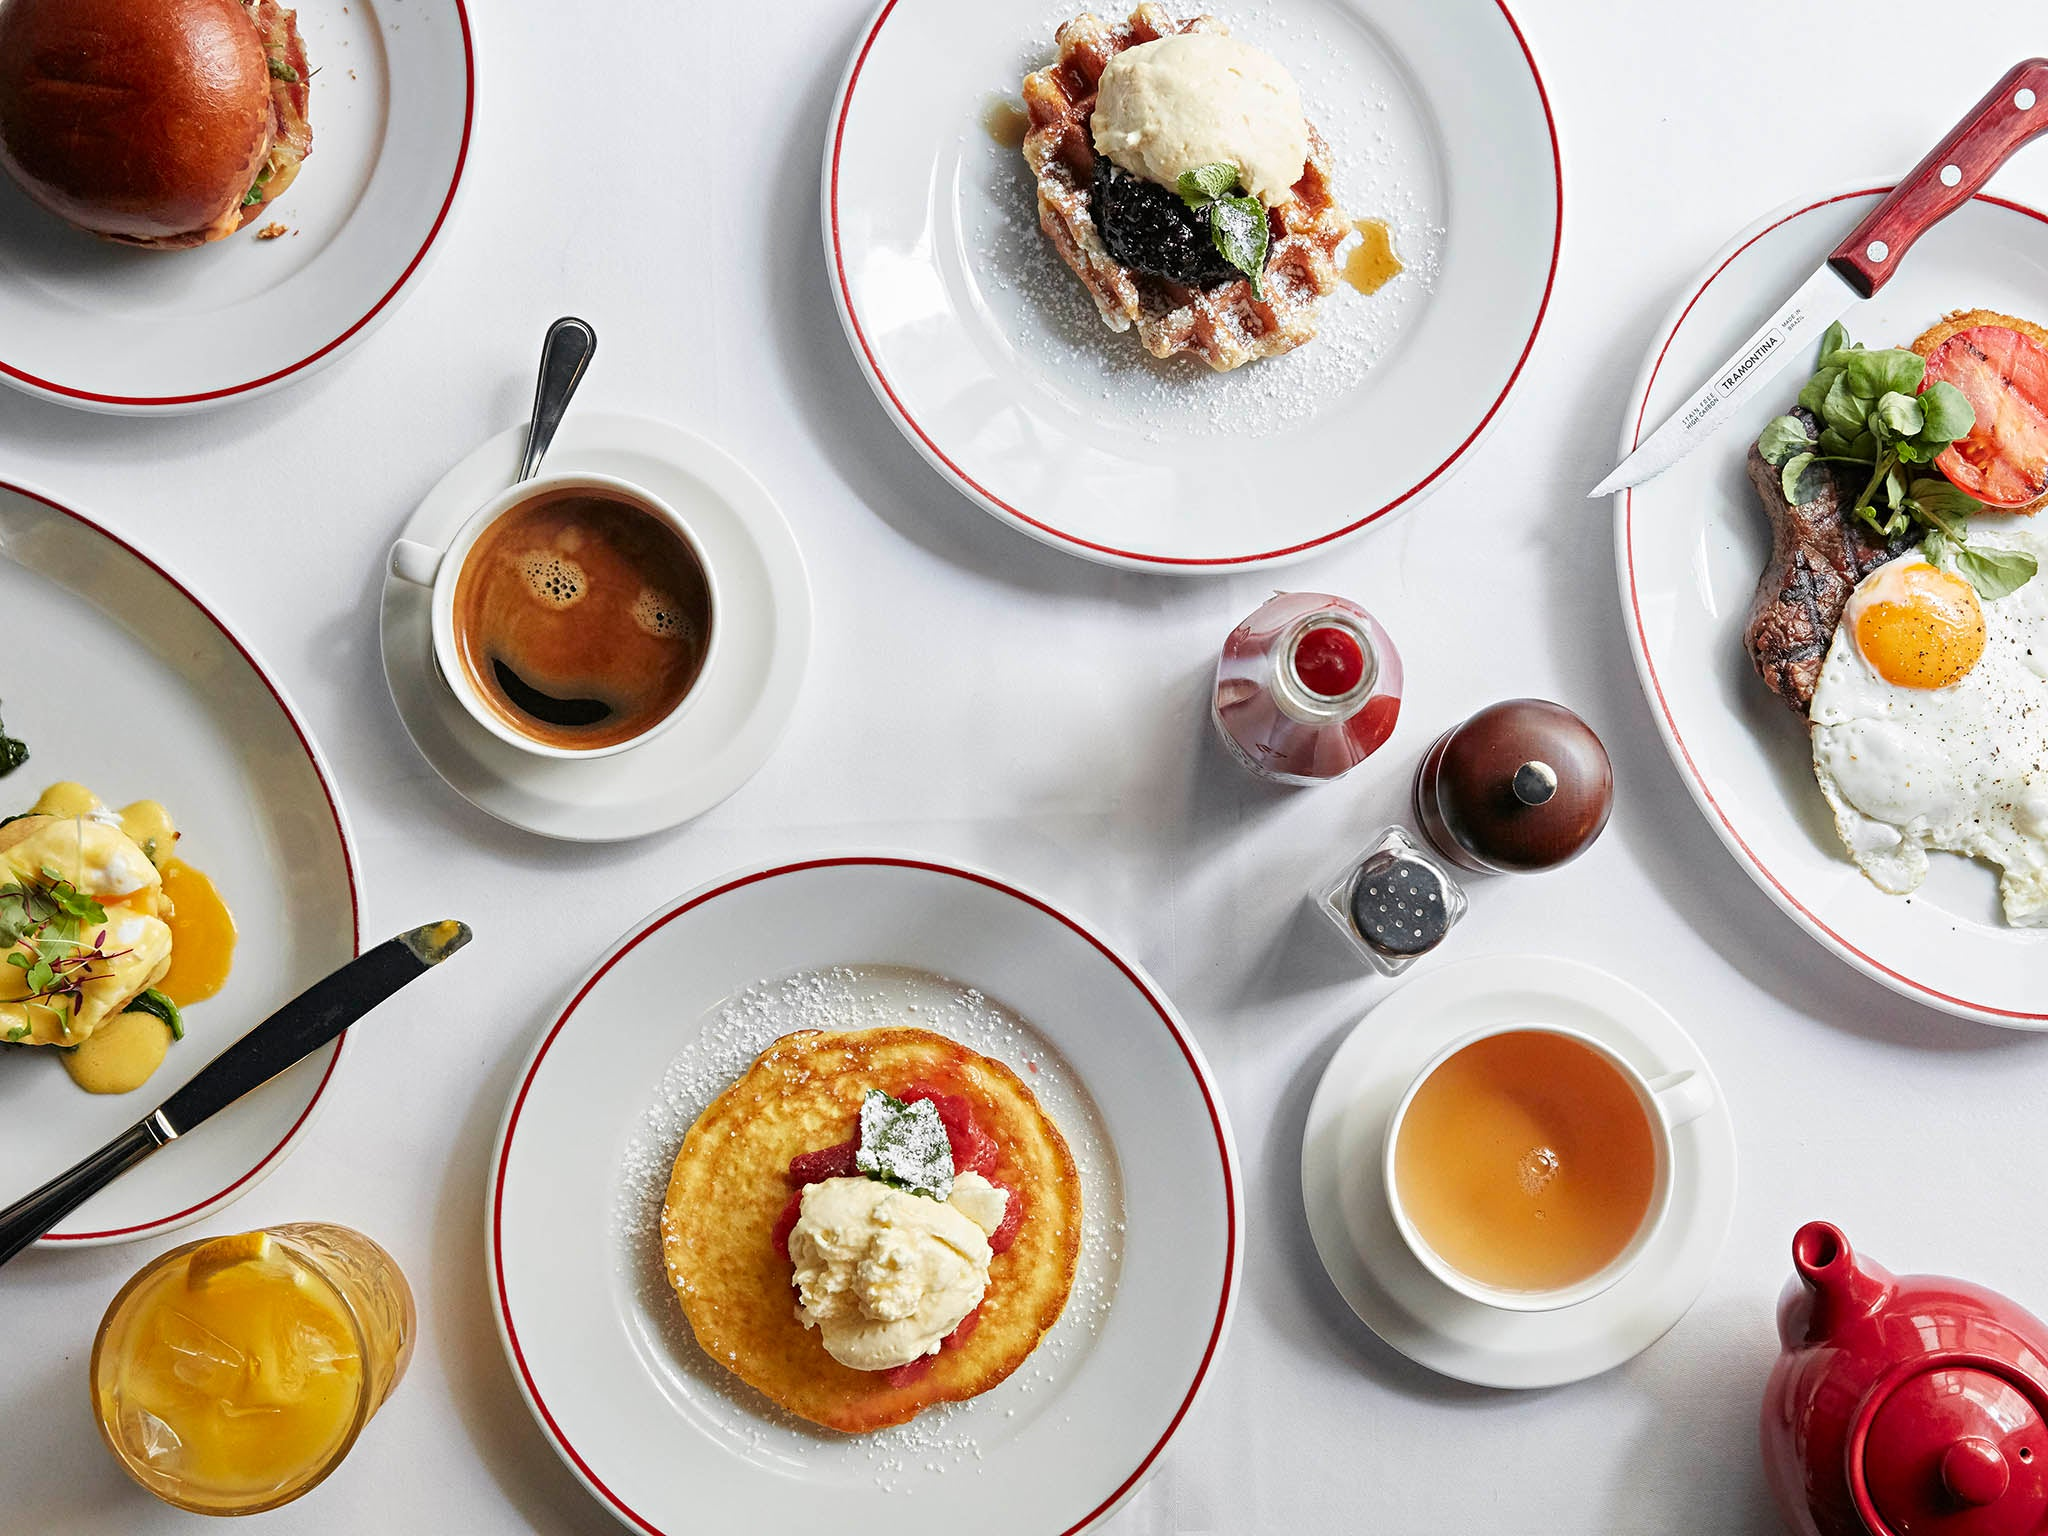 Joe Allen, brunch review: Classic American dishes with a side order of West End singing